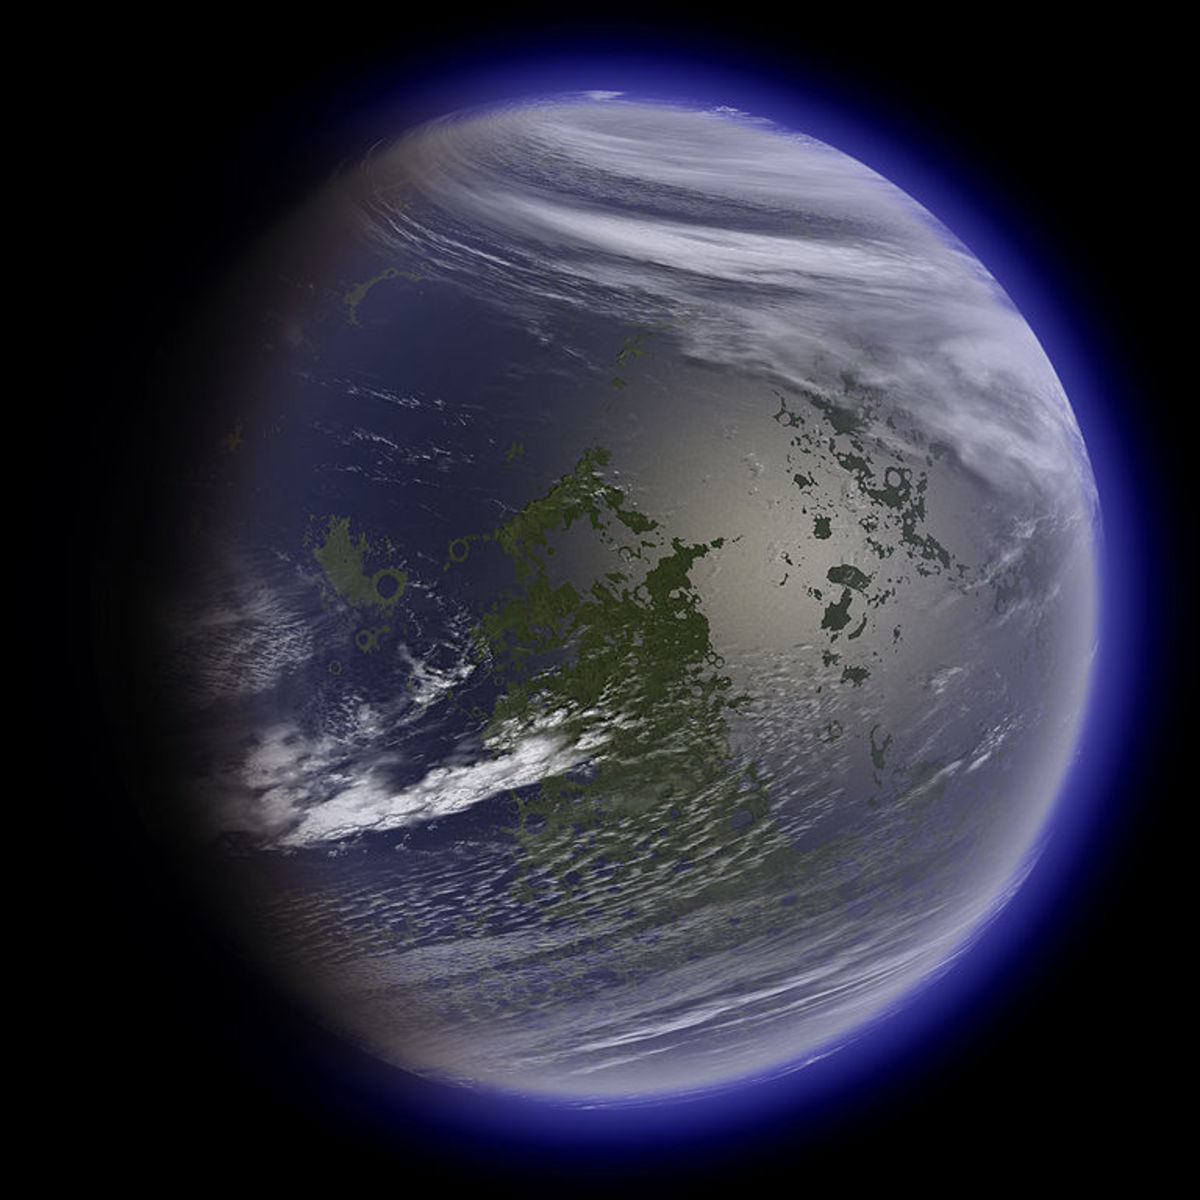 An artist's concept of what the moon could look like when terraformed.